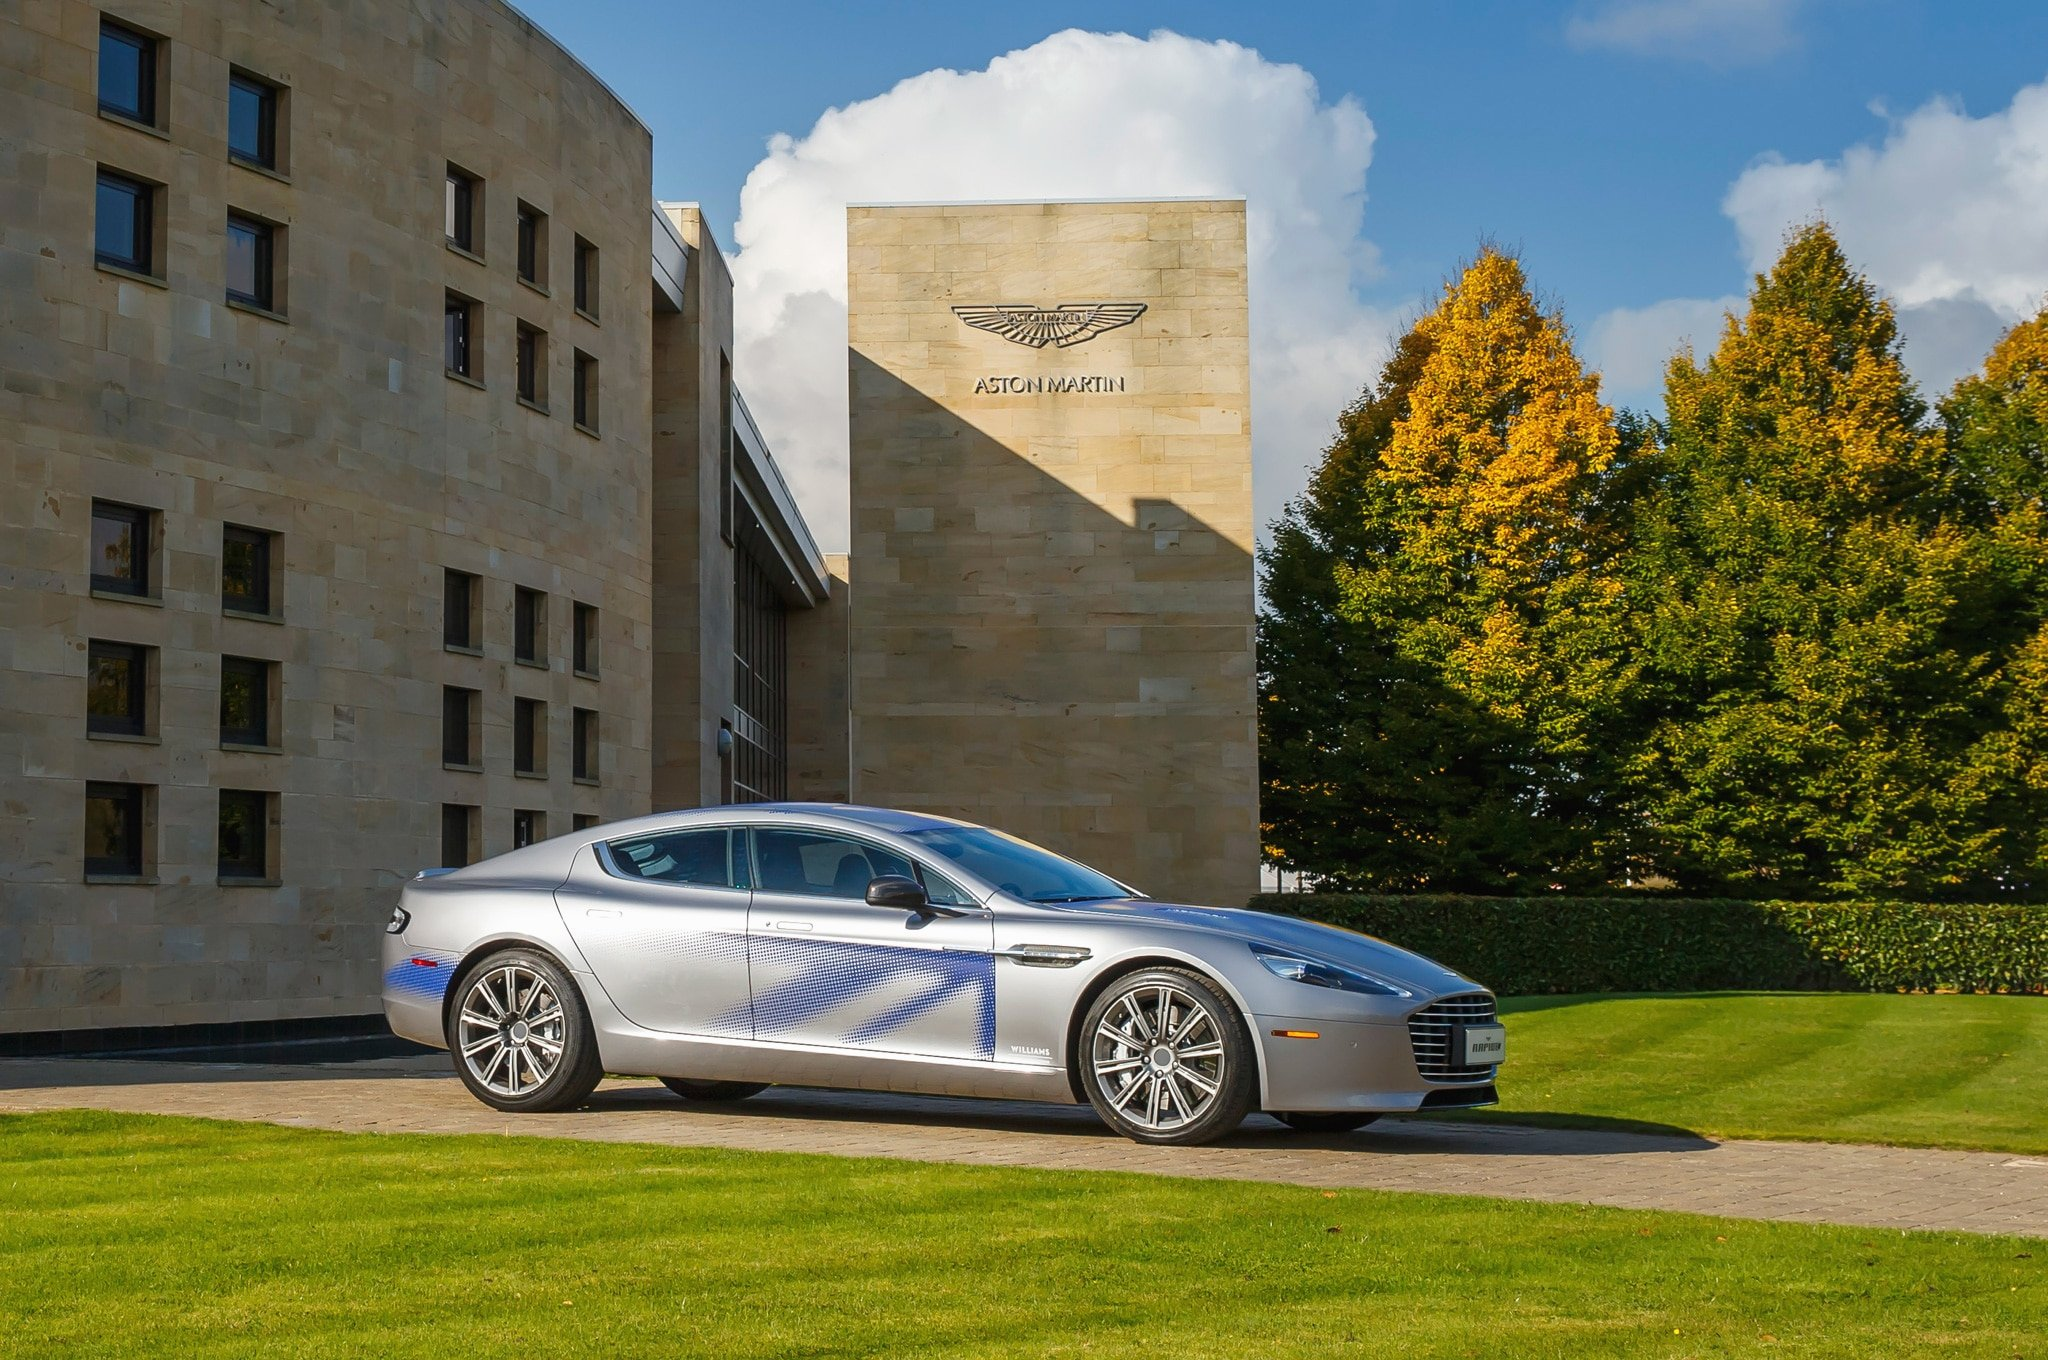 All Electric Aston Martin RapidE Slated for 2018 Photos 2048x1360